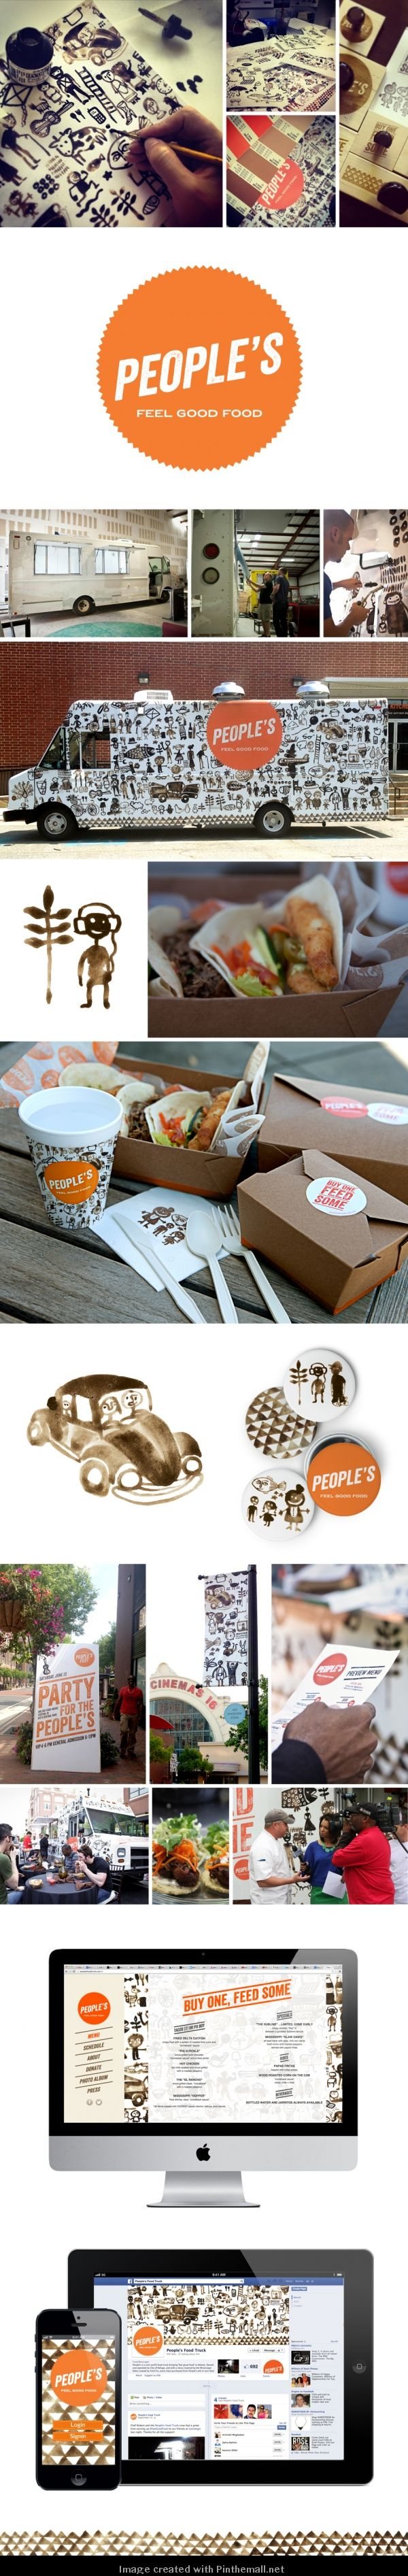 The rocket pizza food truck grits grids - People S Food Truck By Samira Rahimi Via Behance Love The Way That They Have Packaged The Food